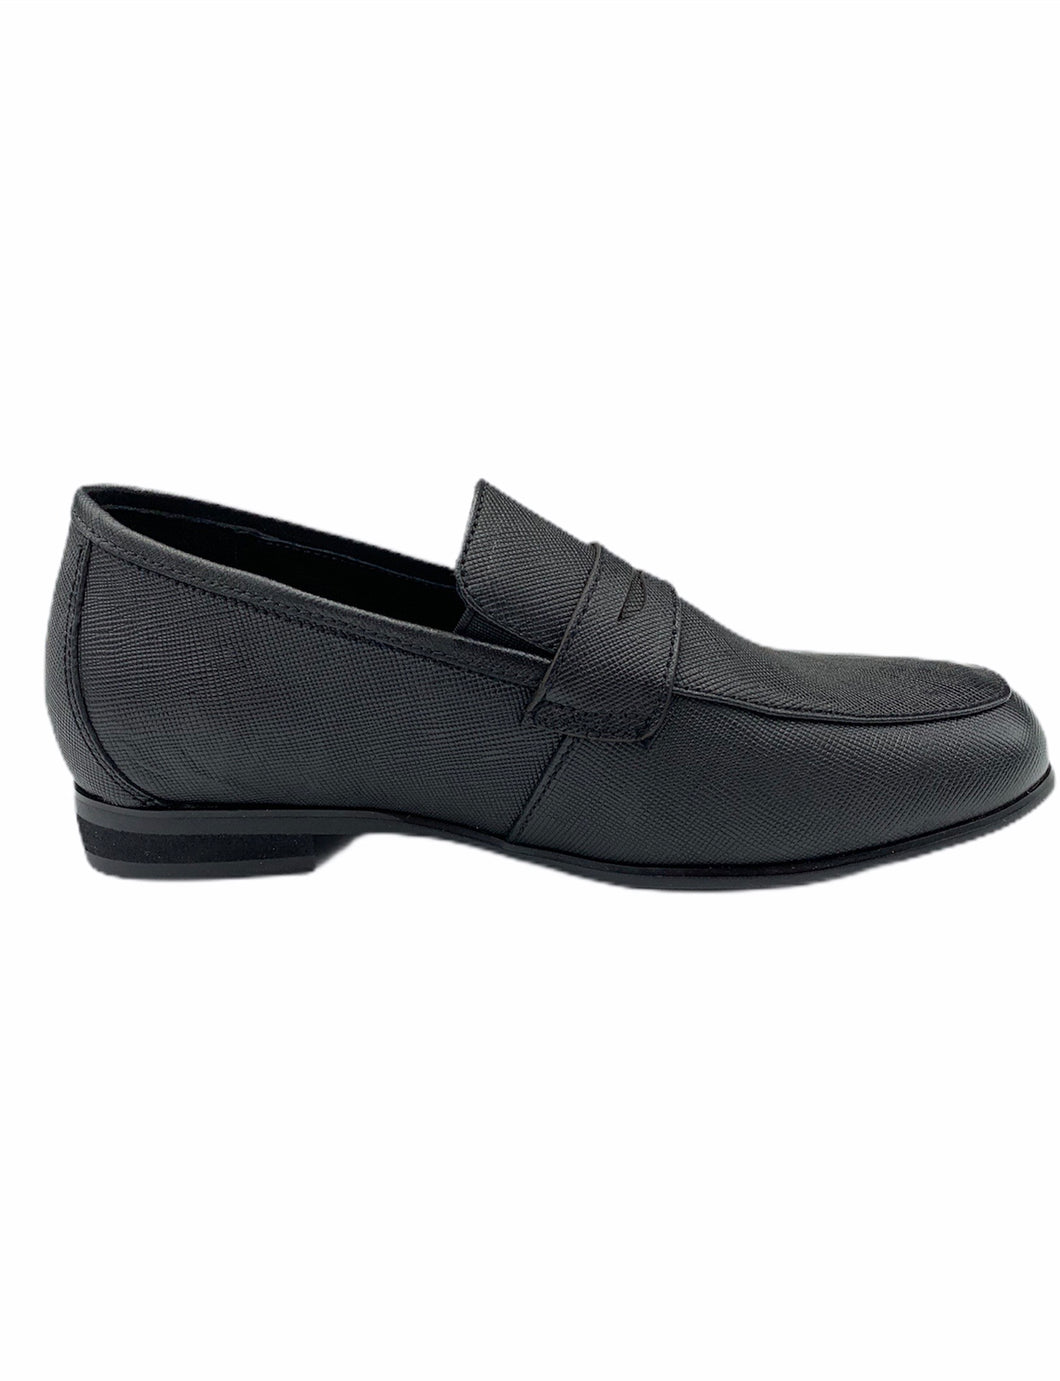 Pardoo Black Texture Penny Loafer 1878